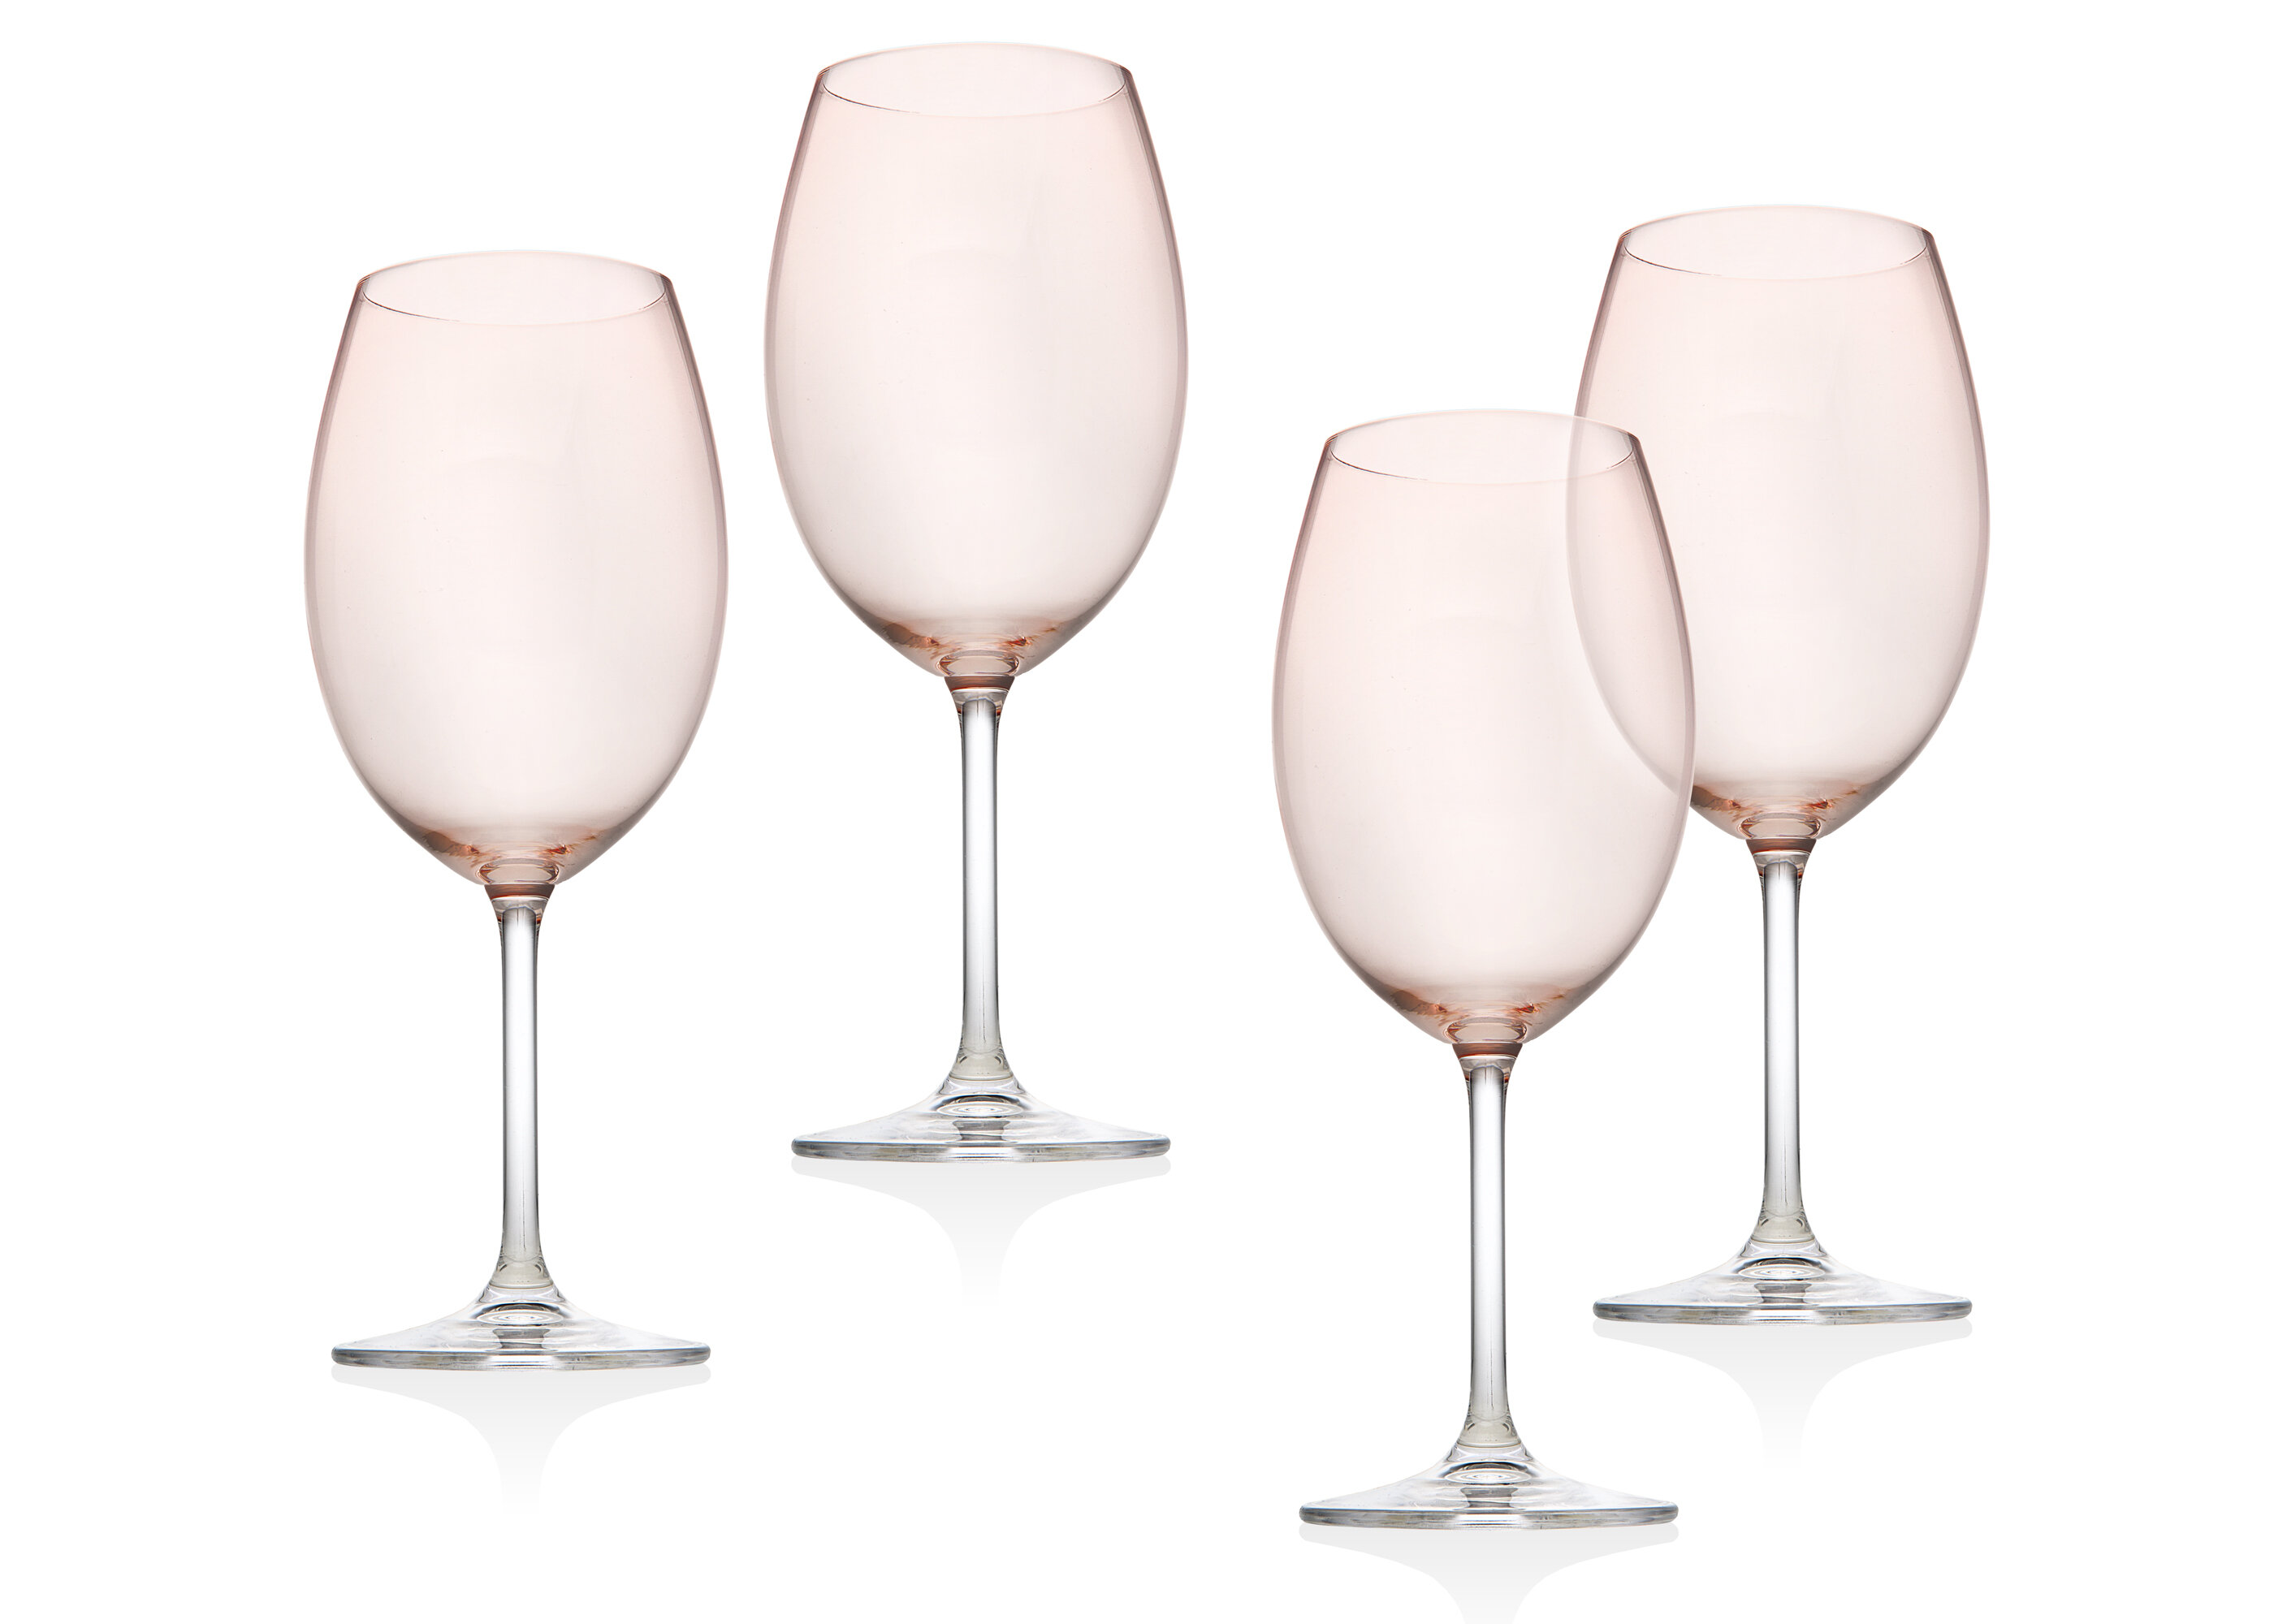 Godinger Silver Art Co Meridian Blush 12 Oz Crystal All Purpose Wine Glass Reviews Wayfair